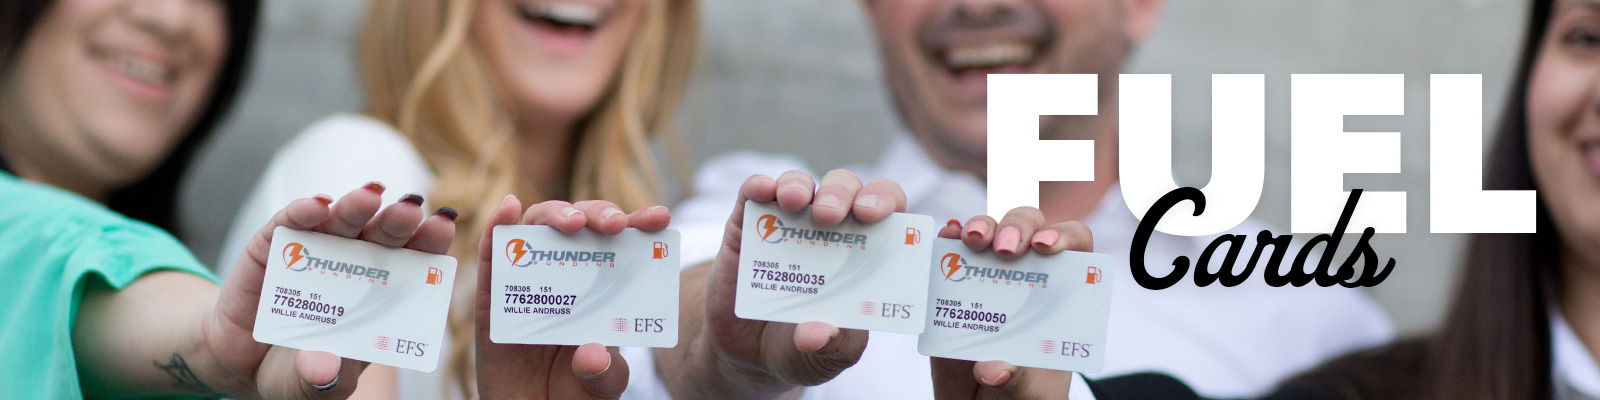 Gas & Fuel Cards for Truckers & Fleets - No Setup Fees!